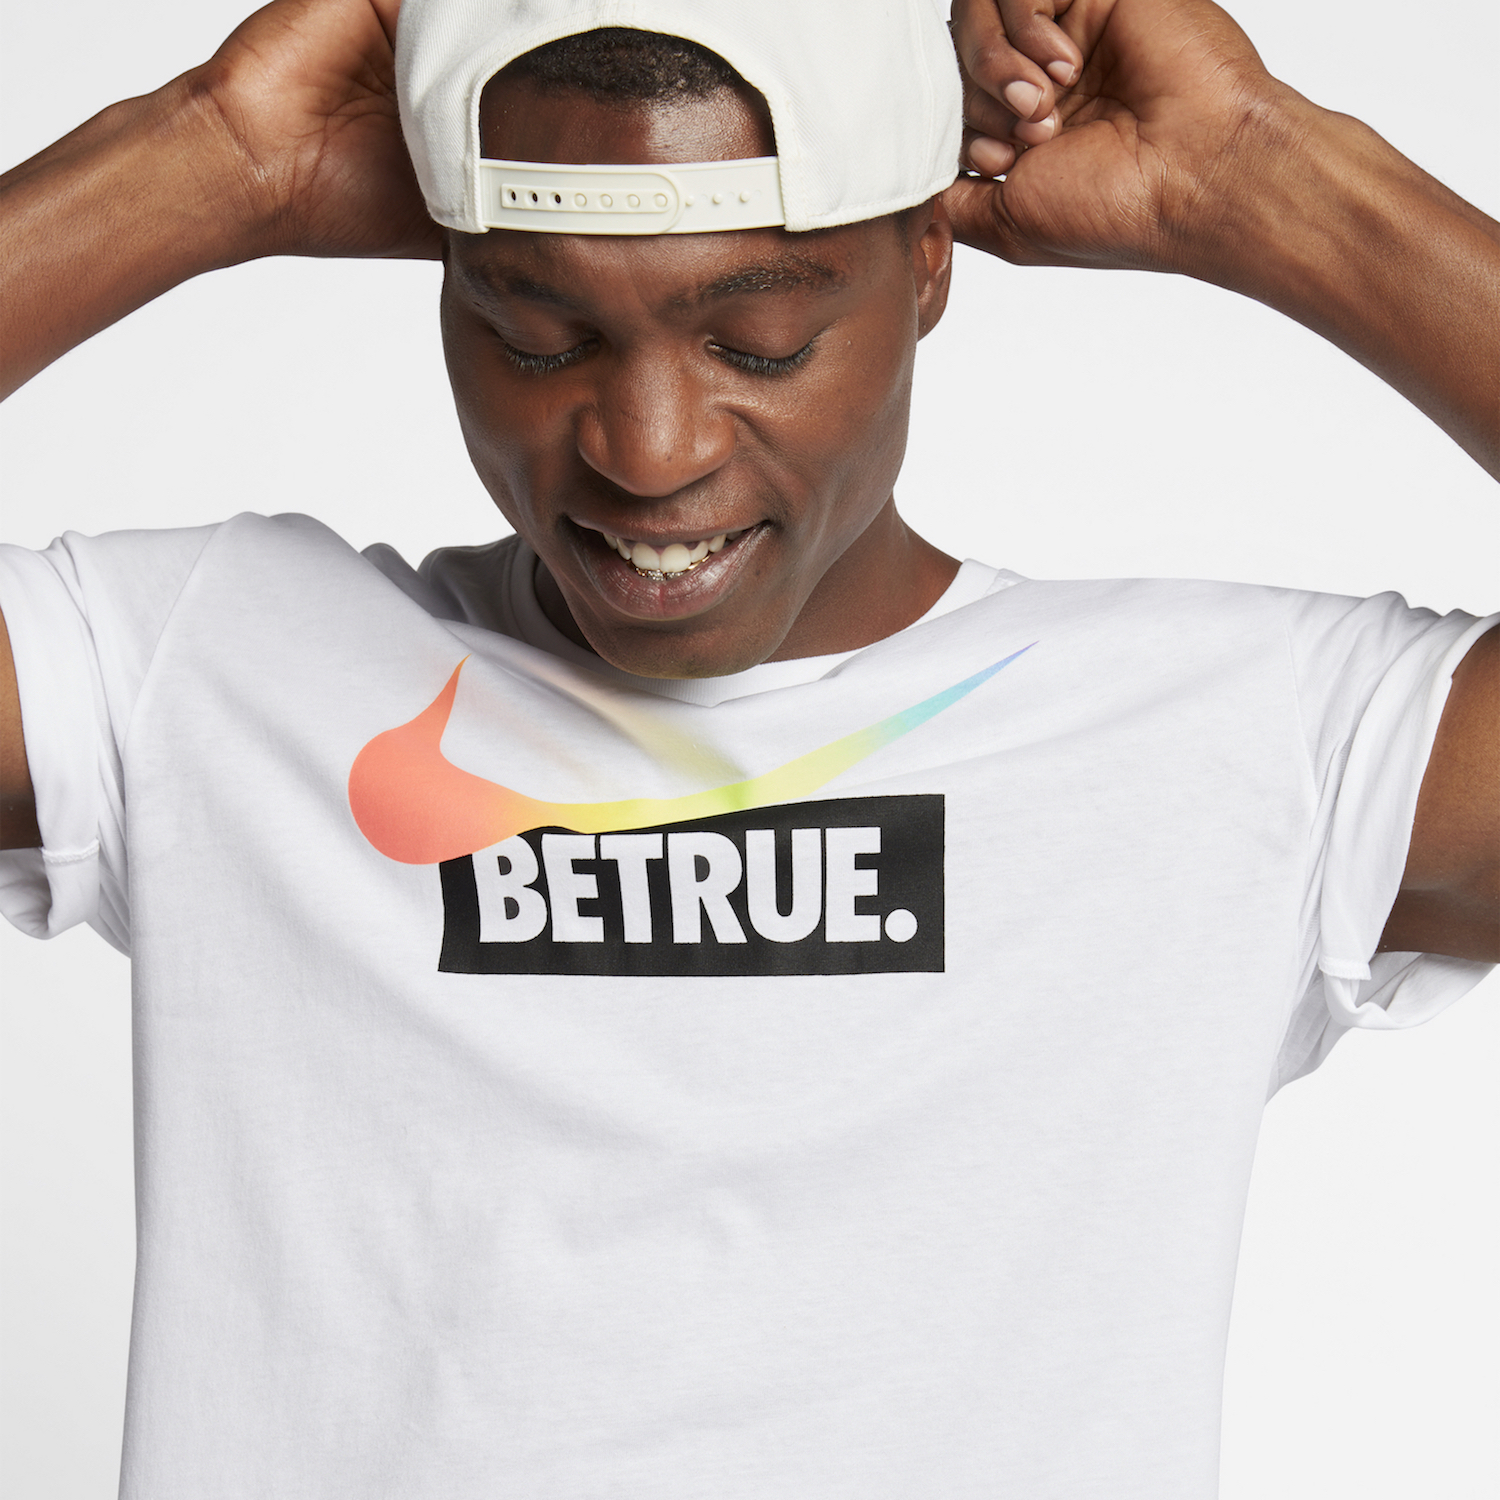 nike BETRUE 2017 collection t-shirt 1